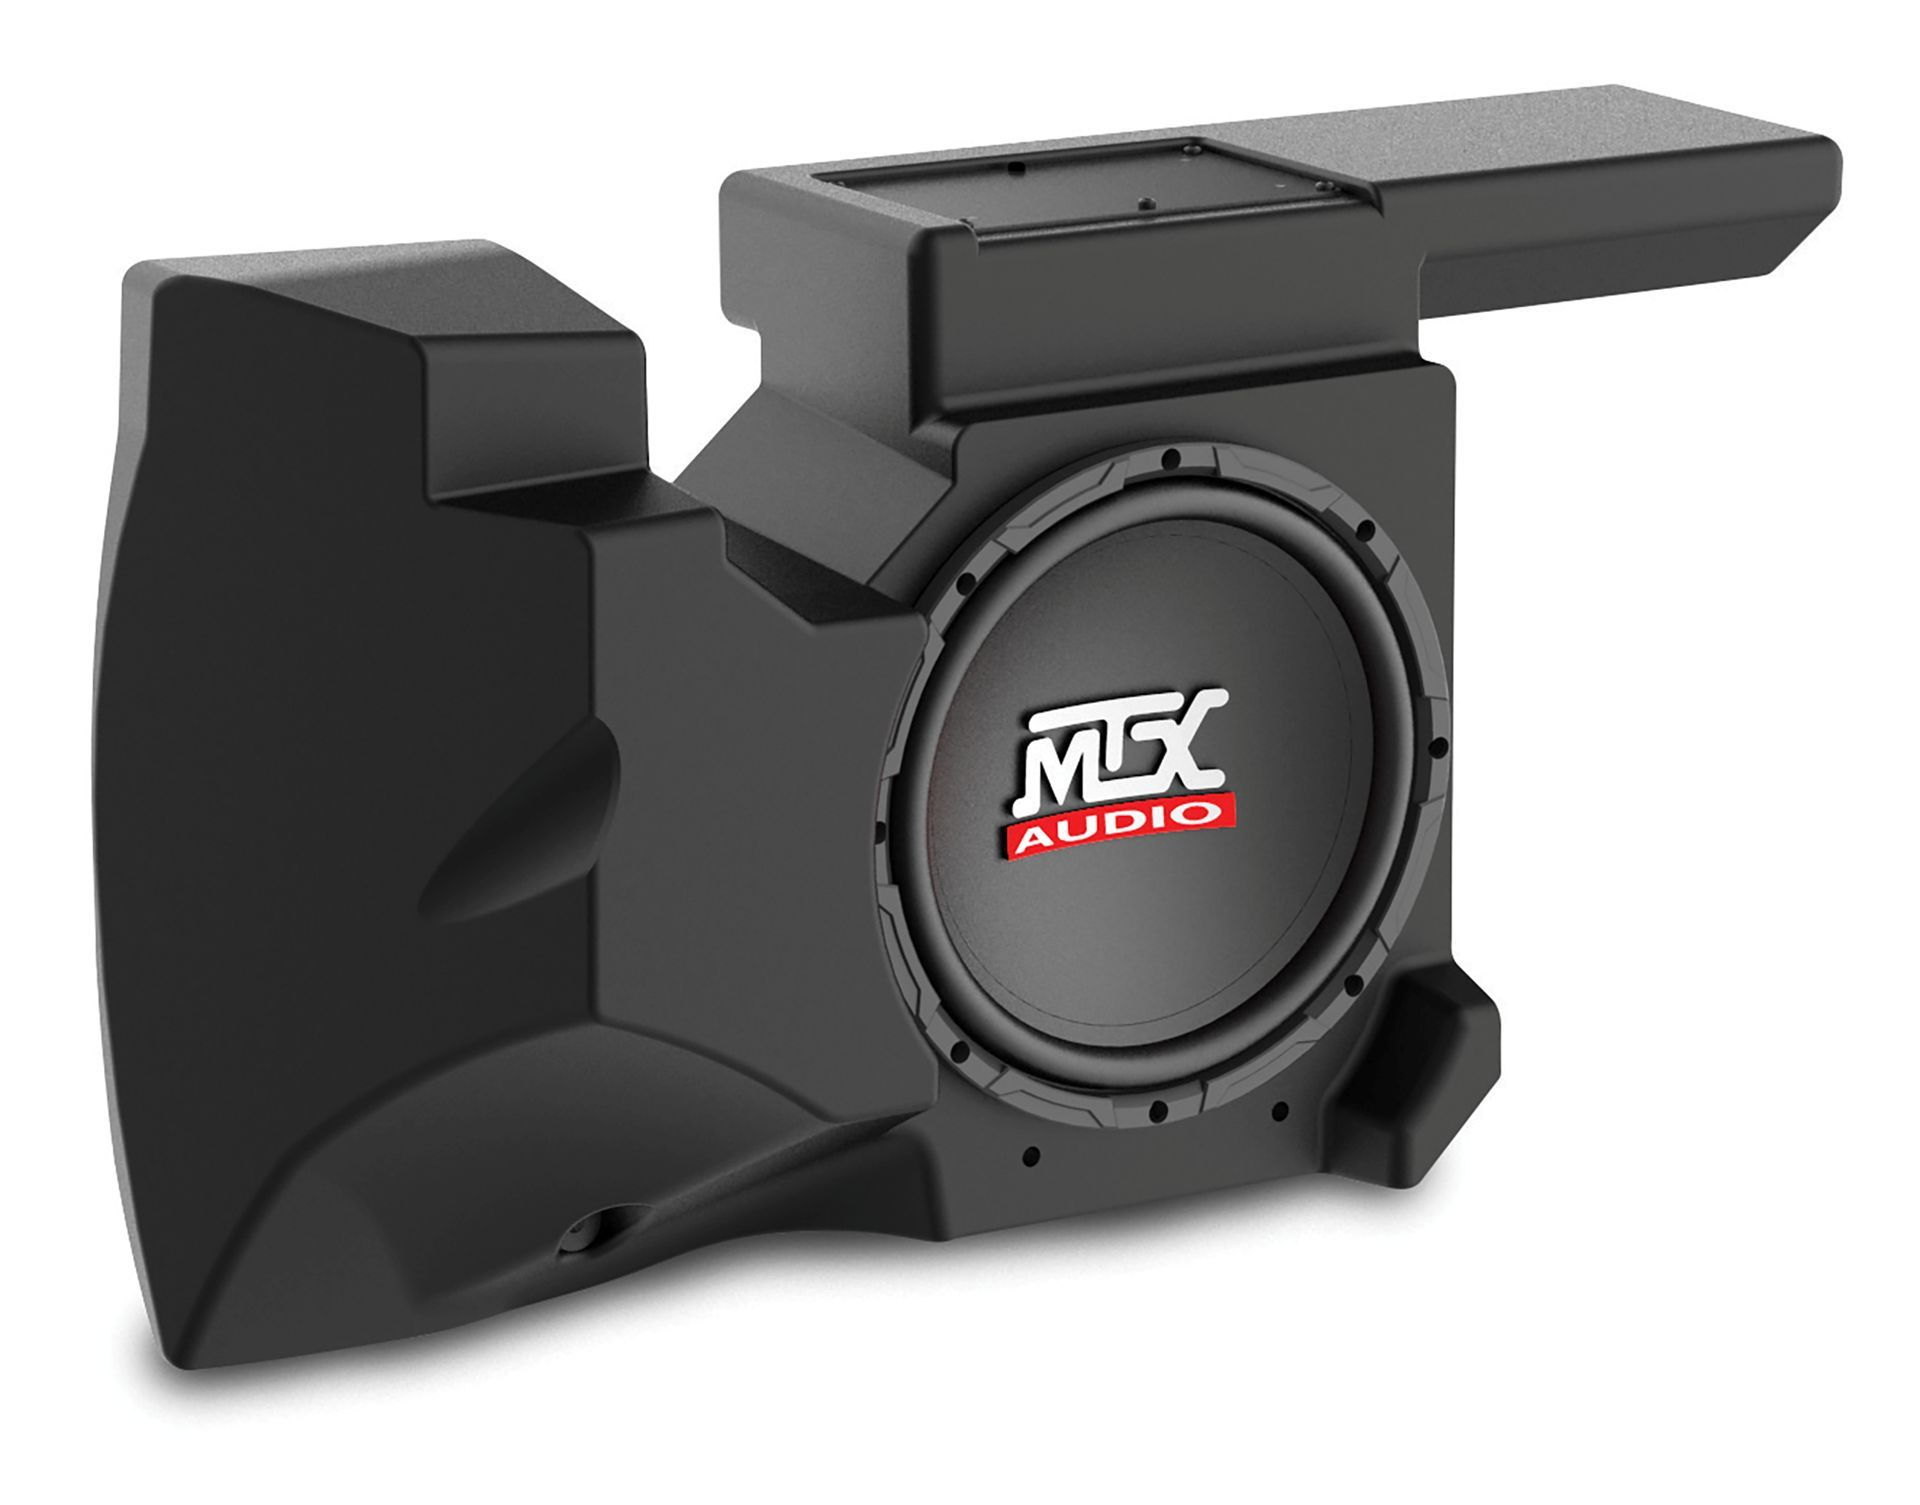 hight resolution of rzrxp 10 amplified subwoofer enclosure for use on select polaris rzr models mtx audio serious about sound